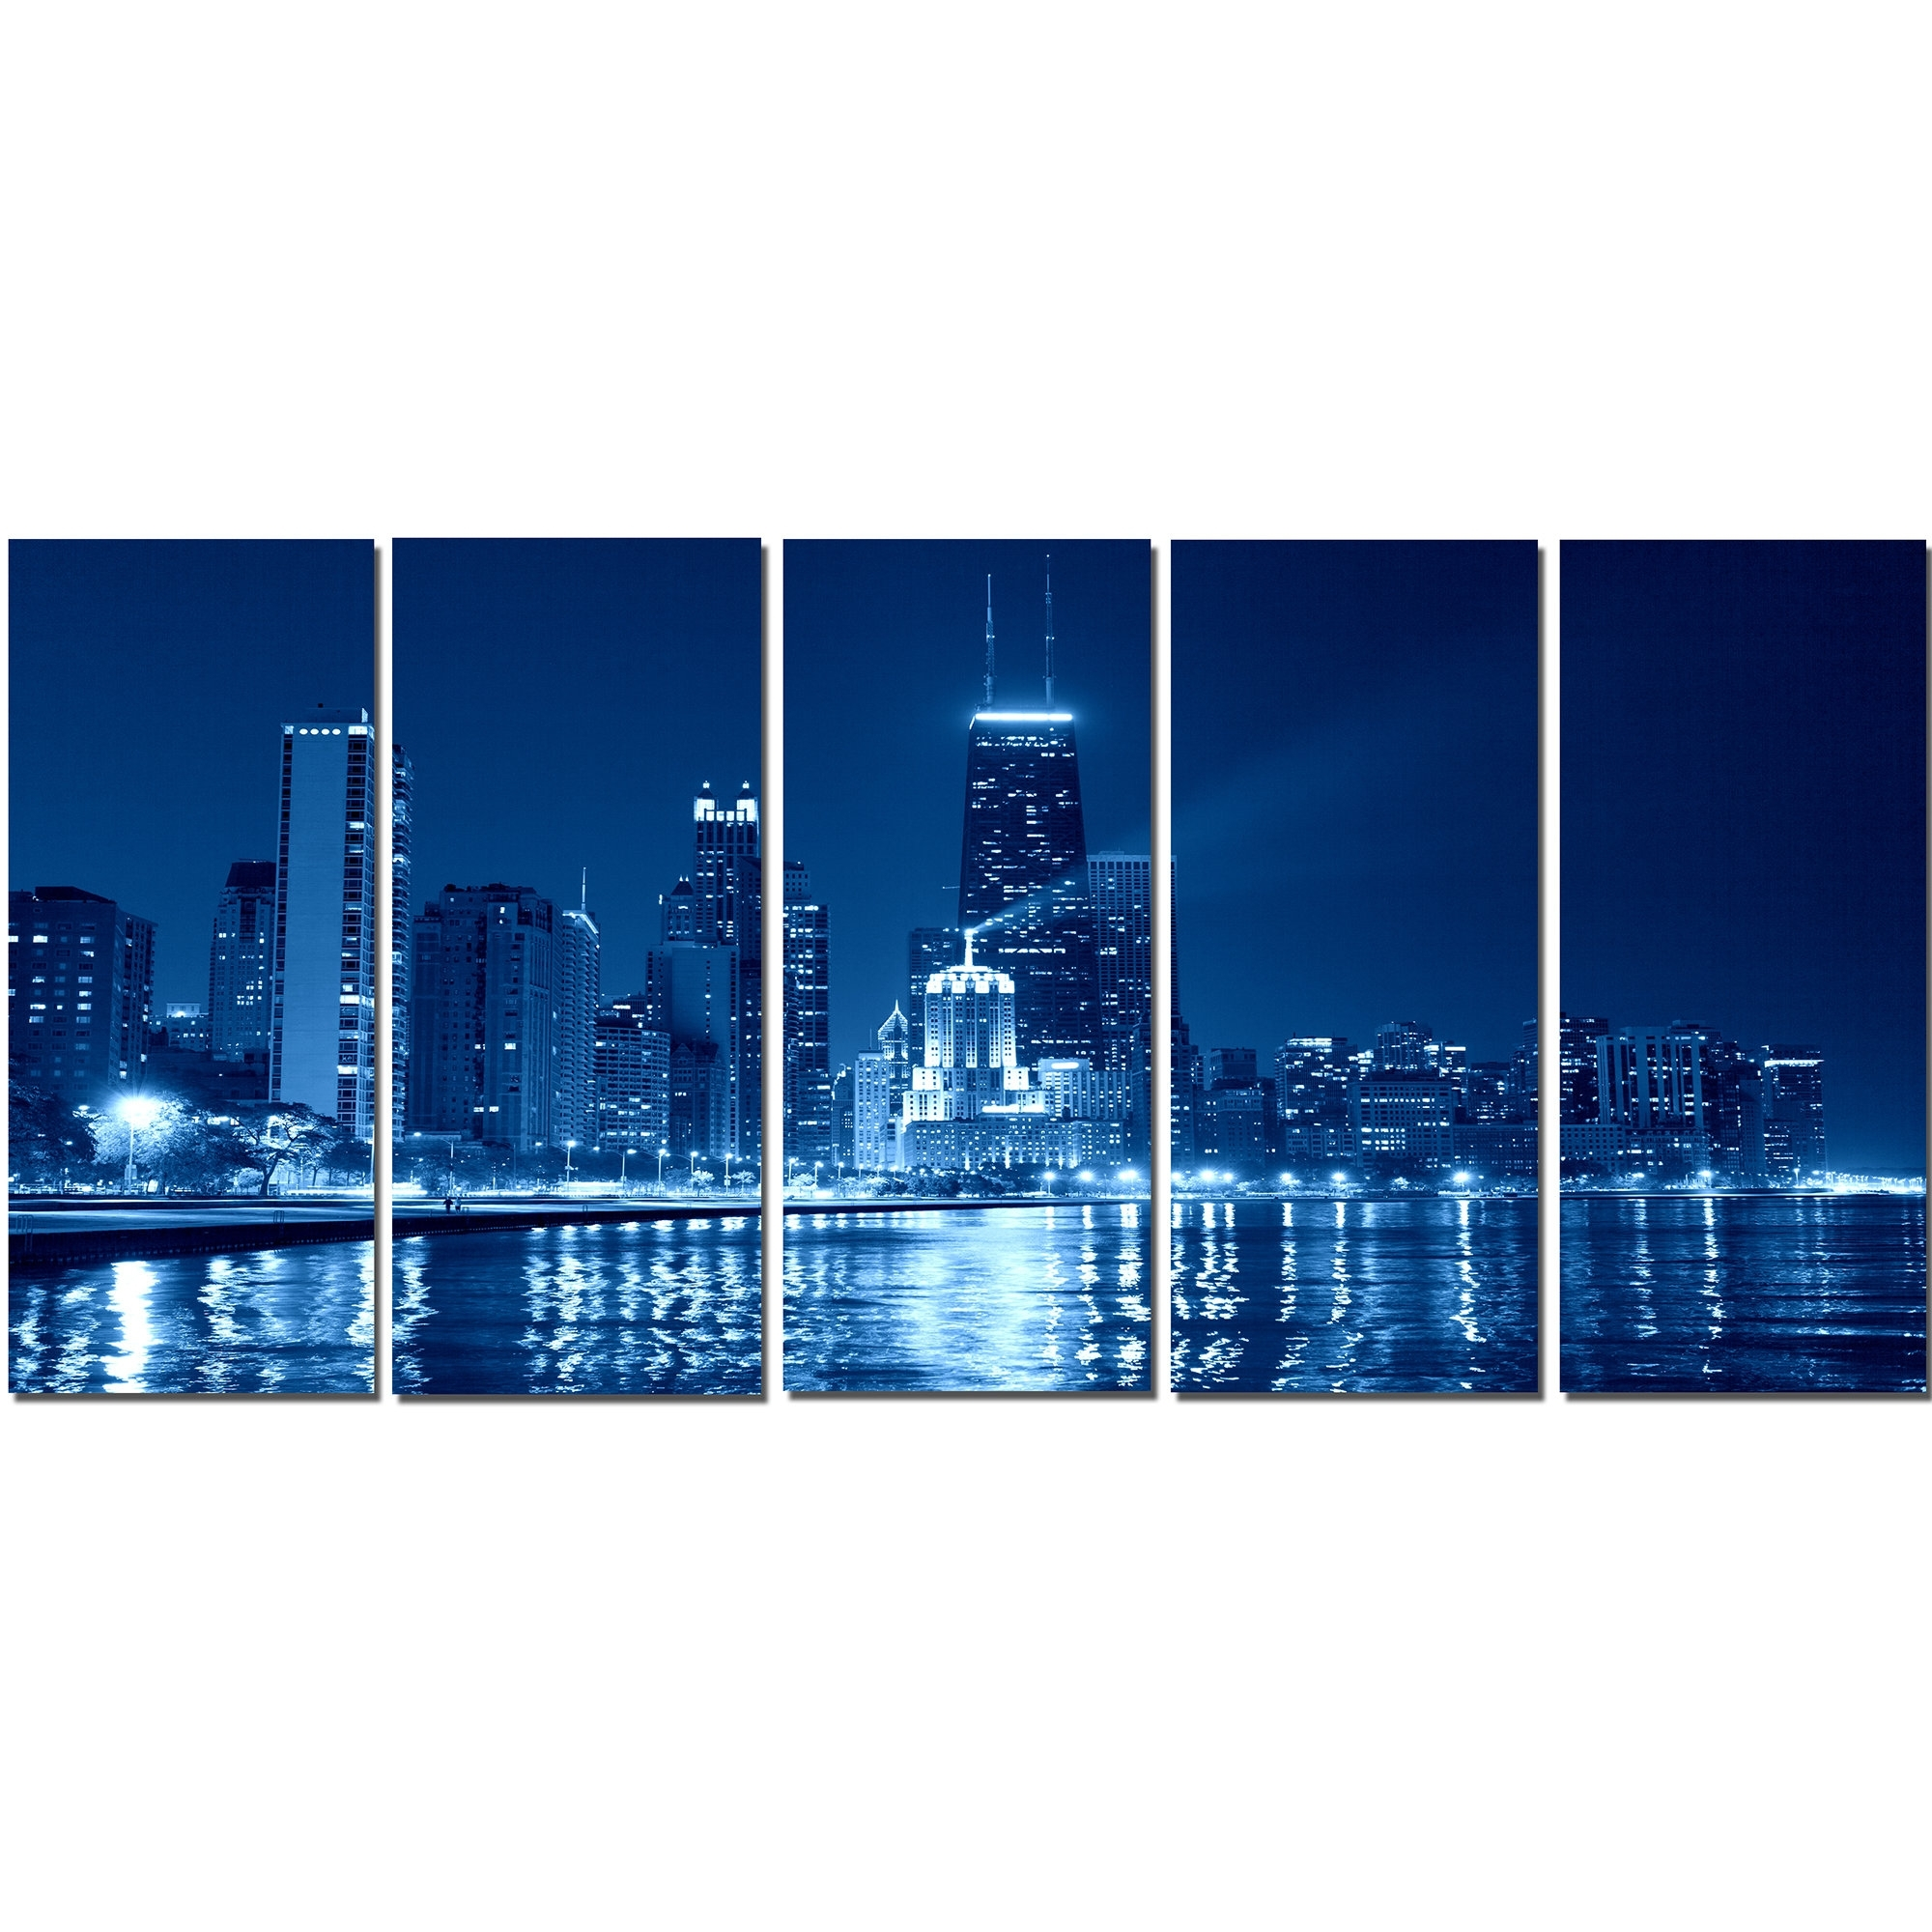 Current Chicago Wall Art With Regard To Designart Blue Chicago Skyline Night 5 Piece Wall Art On Wrapped (Gallery 7 of 15)